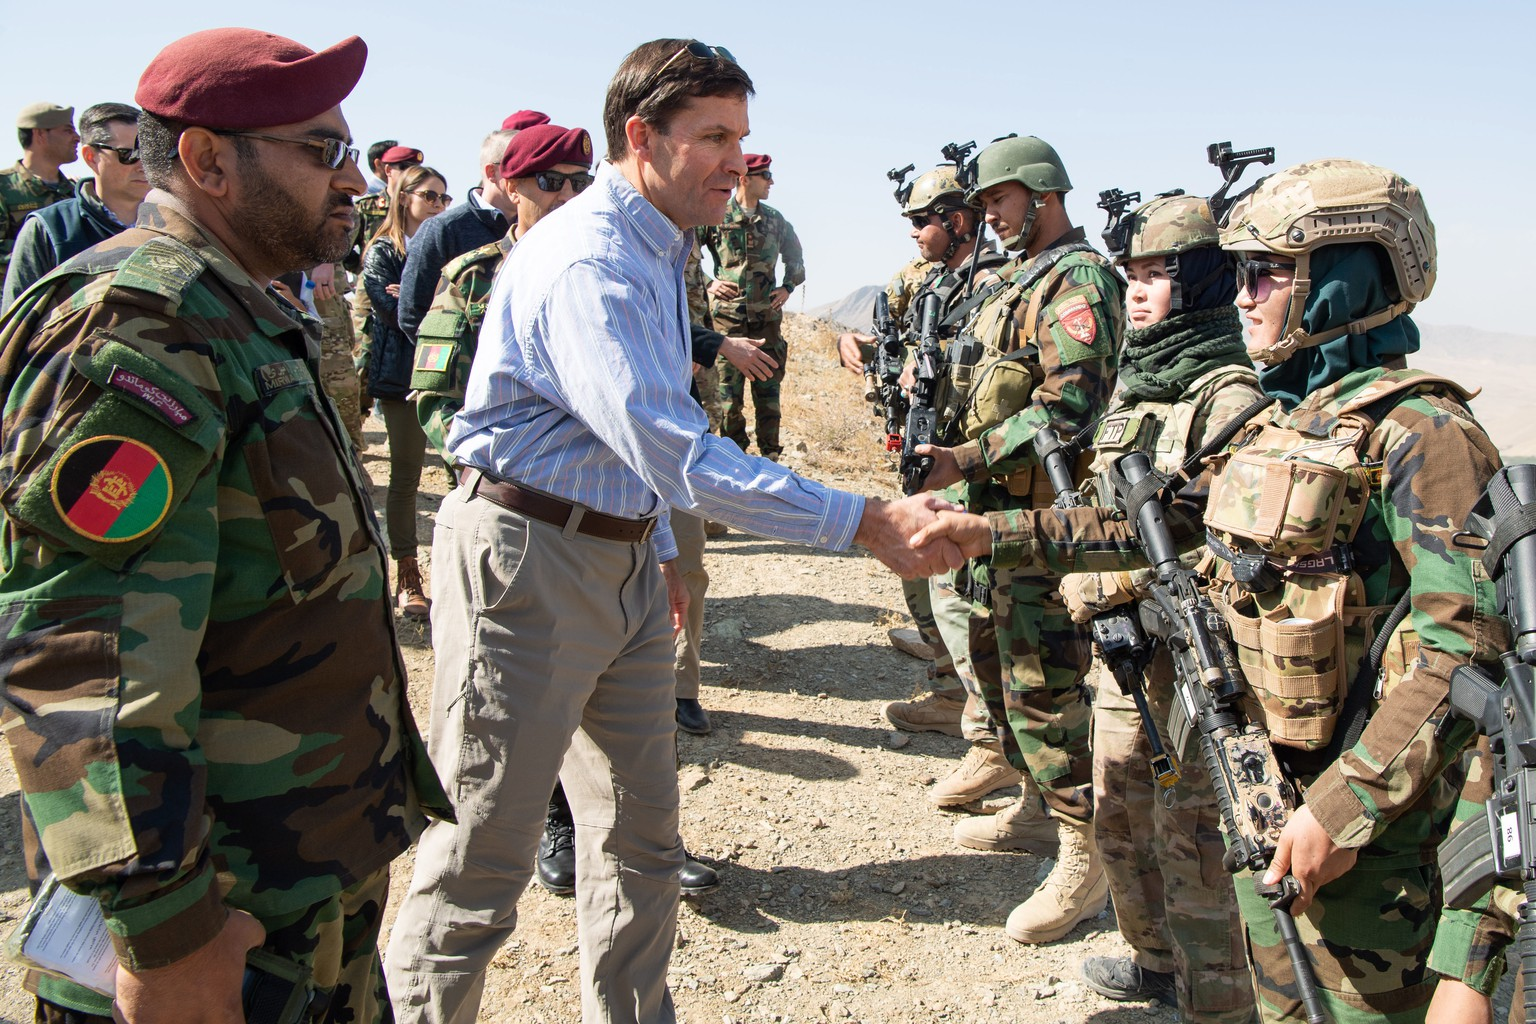 epa07940226 A handout photo made available by the US Department of Defense (DOD) shows US Defense Secretary Mark T. Esper (C) meeting with members of the Afghan special forces to observe their training at Camp Commando, Afghanistan, 21 October 2019 (issued 22 October 2019). According to reports, Defense Secretary Esper said that the reduction od US forces in Afghanistan relies on a peace agreement with the Taliban.  EPA/STAFF SGT. BRANDY NICOLE MEJIA/US DEPARTMENT OF DEFENSE HANDOUT  HANDOUT EDITORIAL USE ONLY/NO SALES